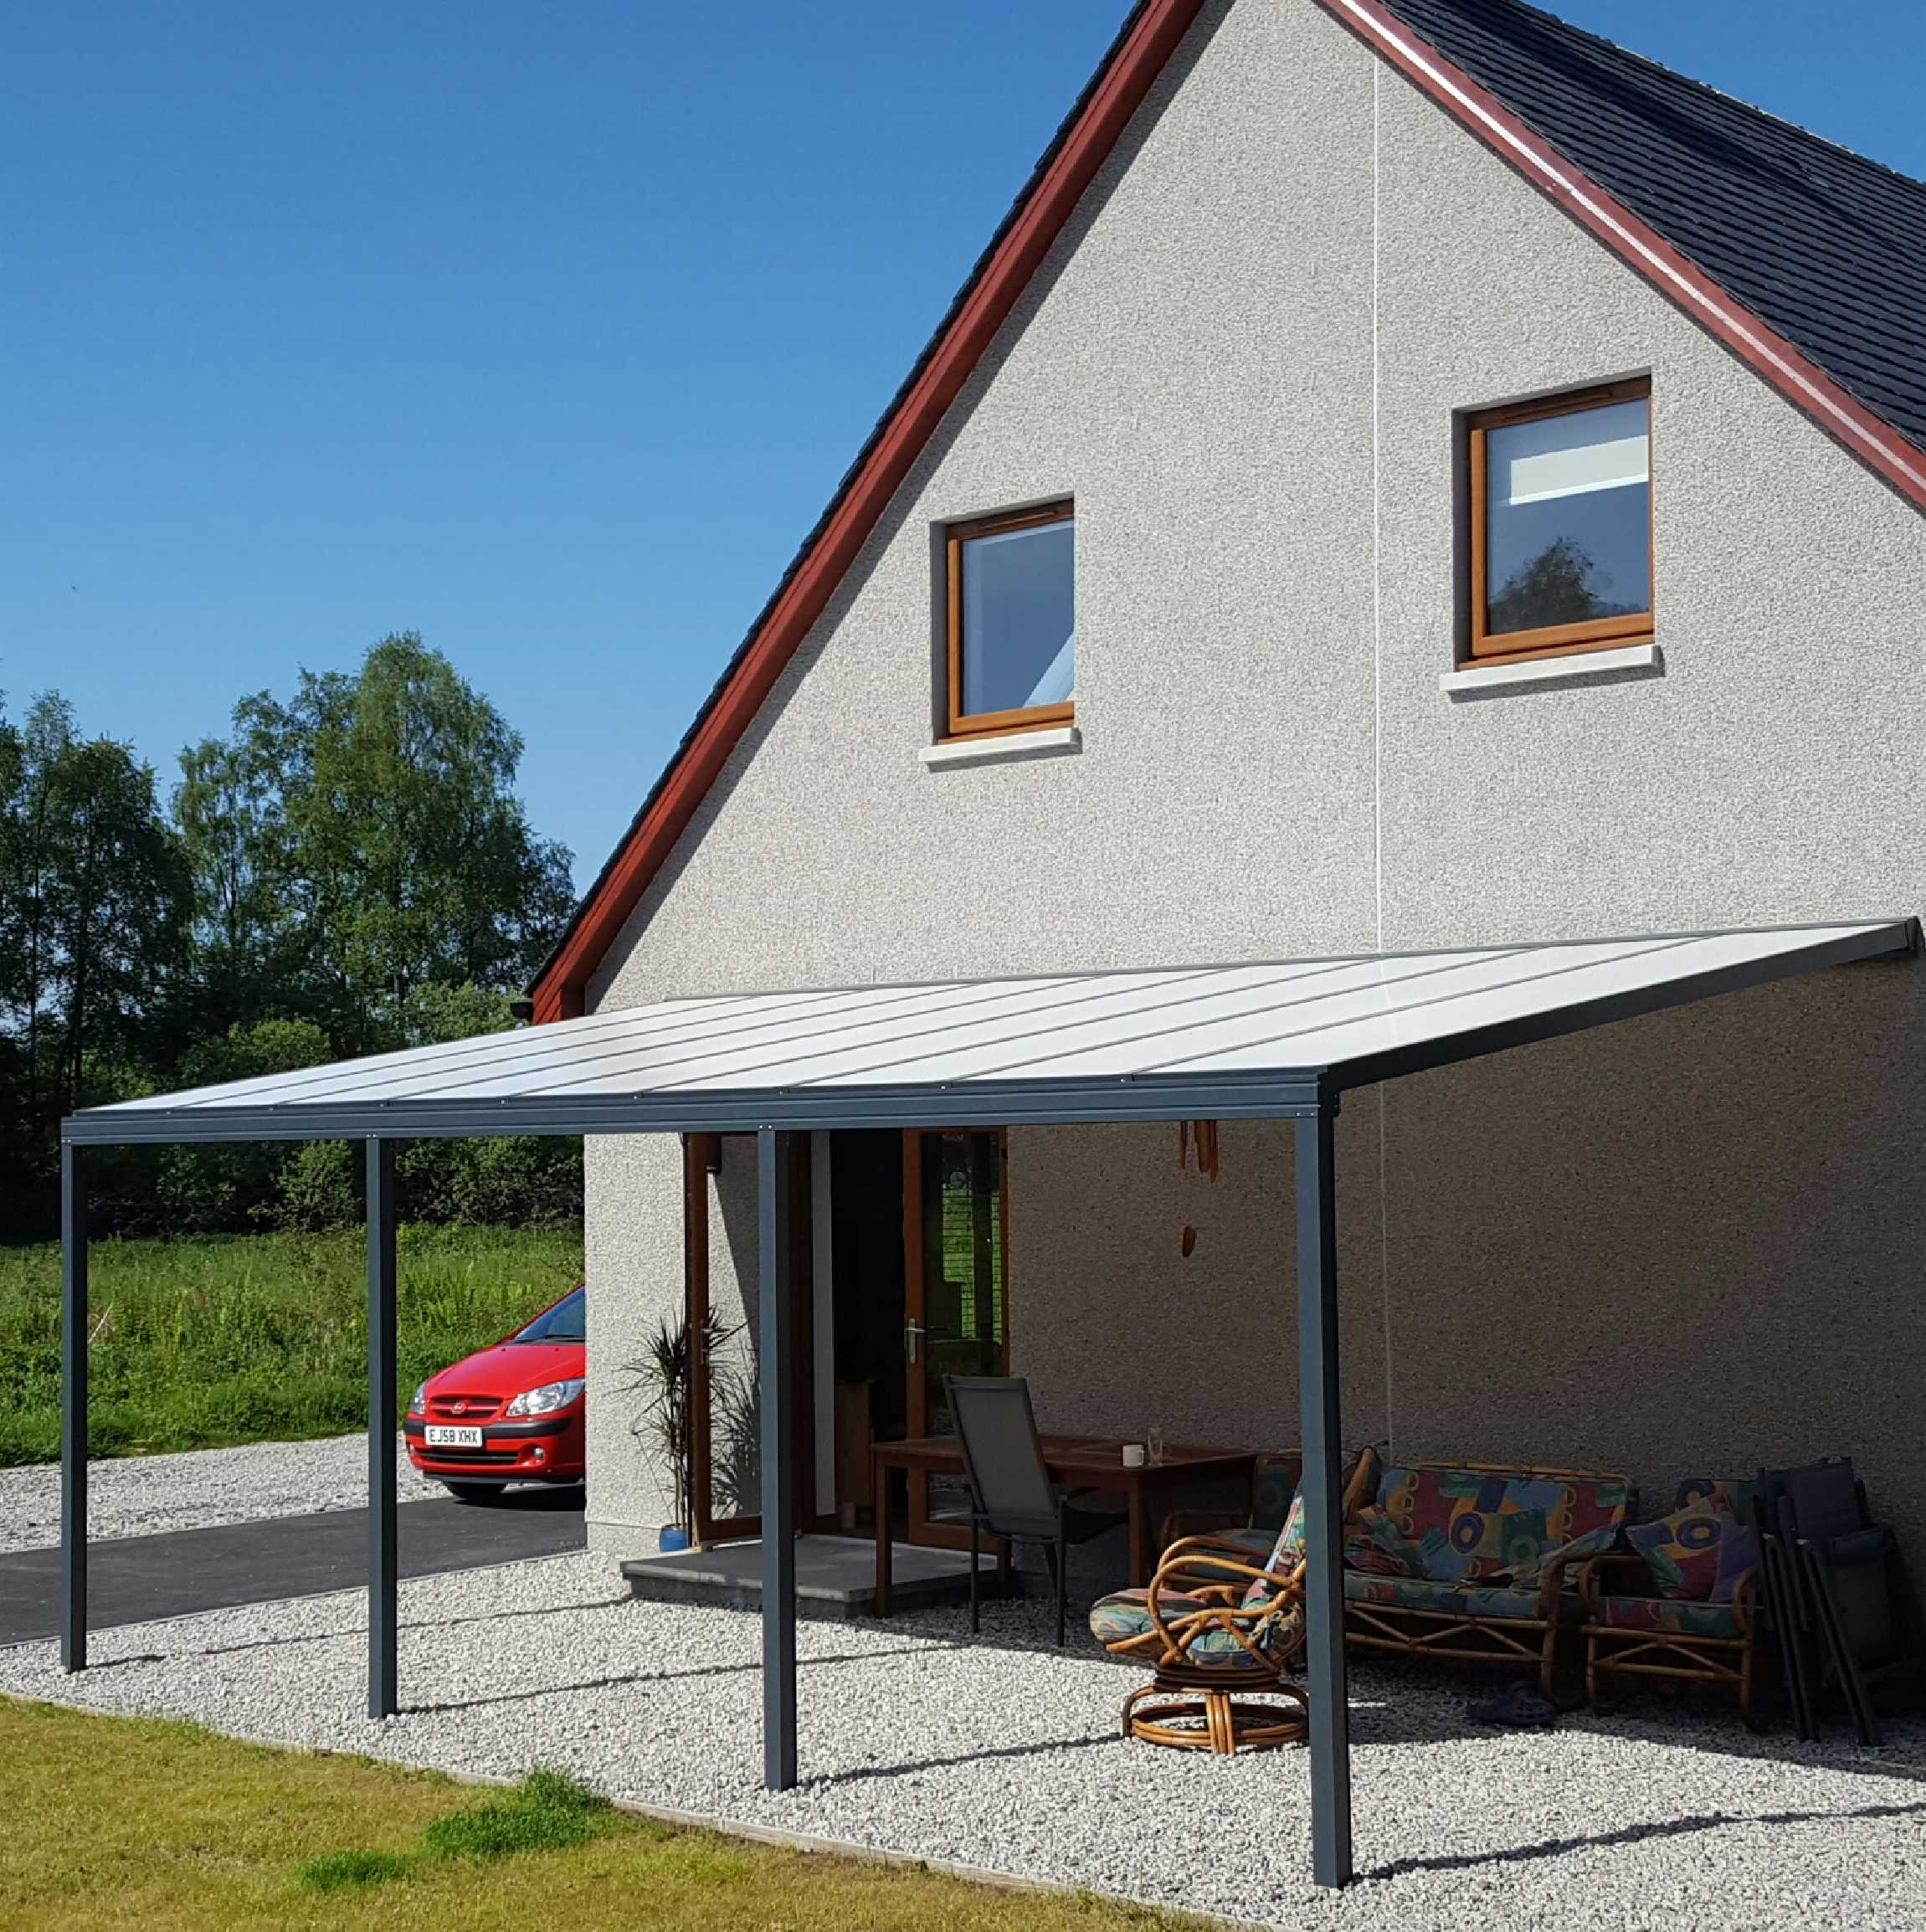 Great selection of Omega Smart Lean-To Canopy, Anthracite Grey, 16mm Polycarbonate Glazing - 7.4m (W) x 1.5m (P), (4) Supporting Posts